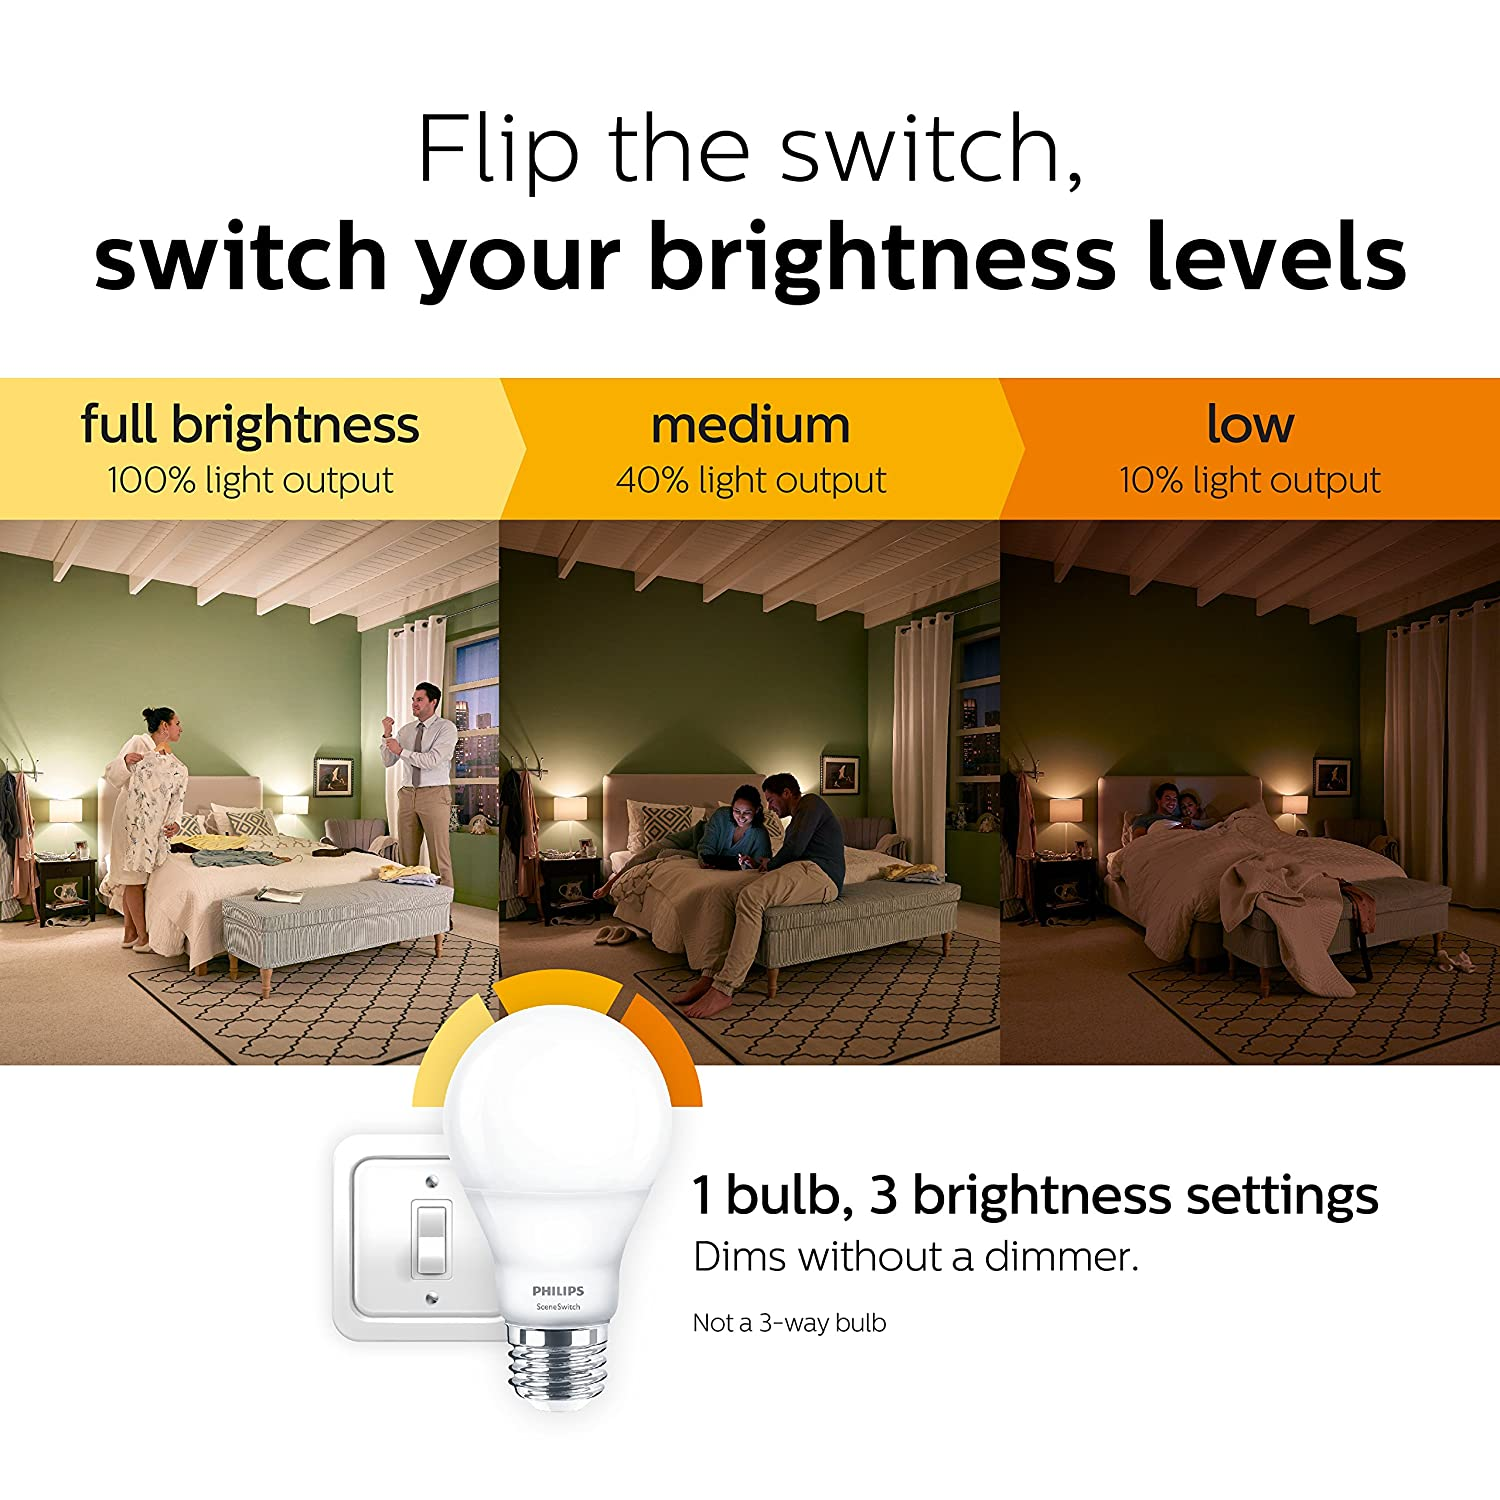 Philips Led A19 Sceneswitch Soft White 3 Setting Light Bulb With Way Hall Switch Warm Glow Effect Bright Medium Low 60 Watt Equivalent E26 Base 4 Pack